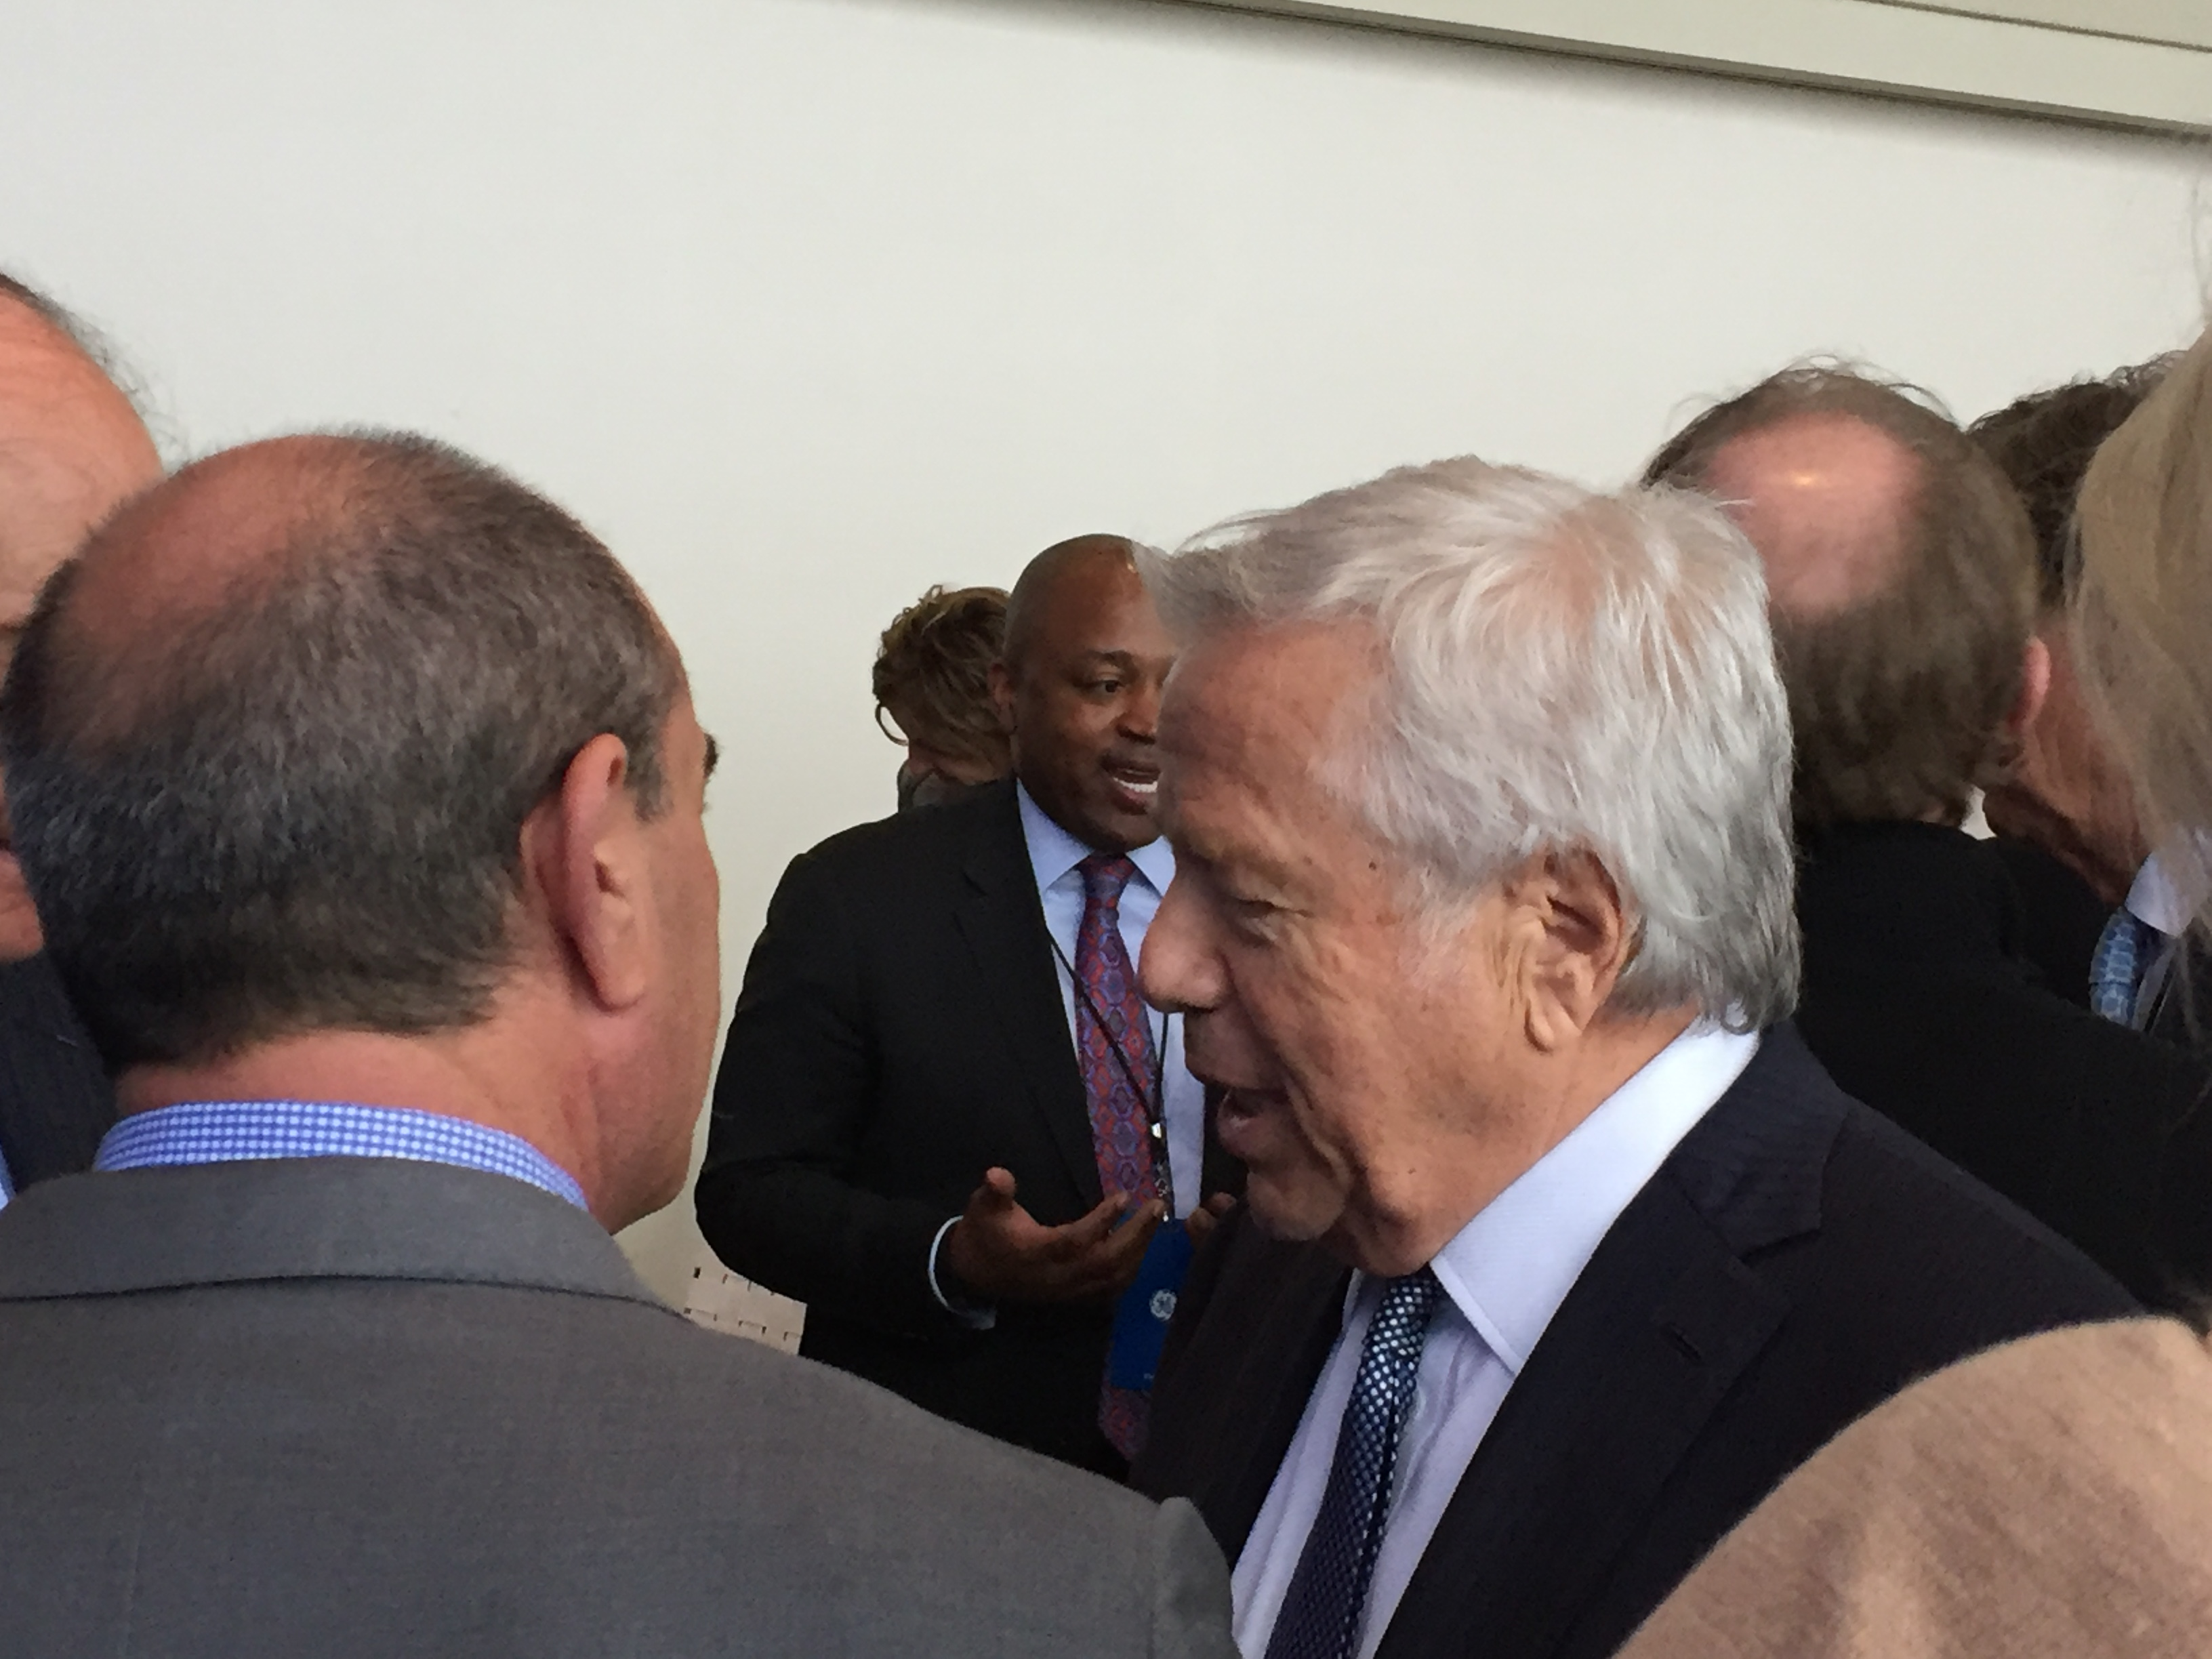 N.E. Patriots owner Robert Kraft at Boston reception for GE.